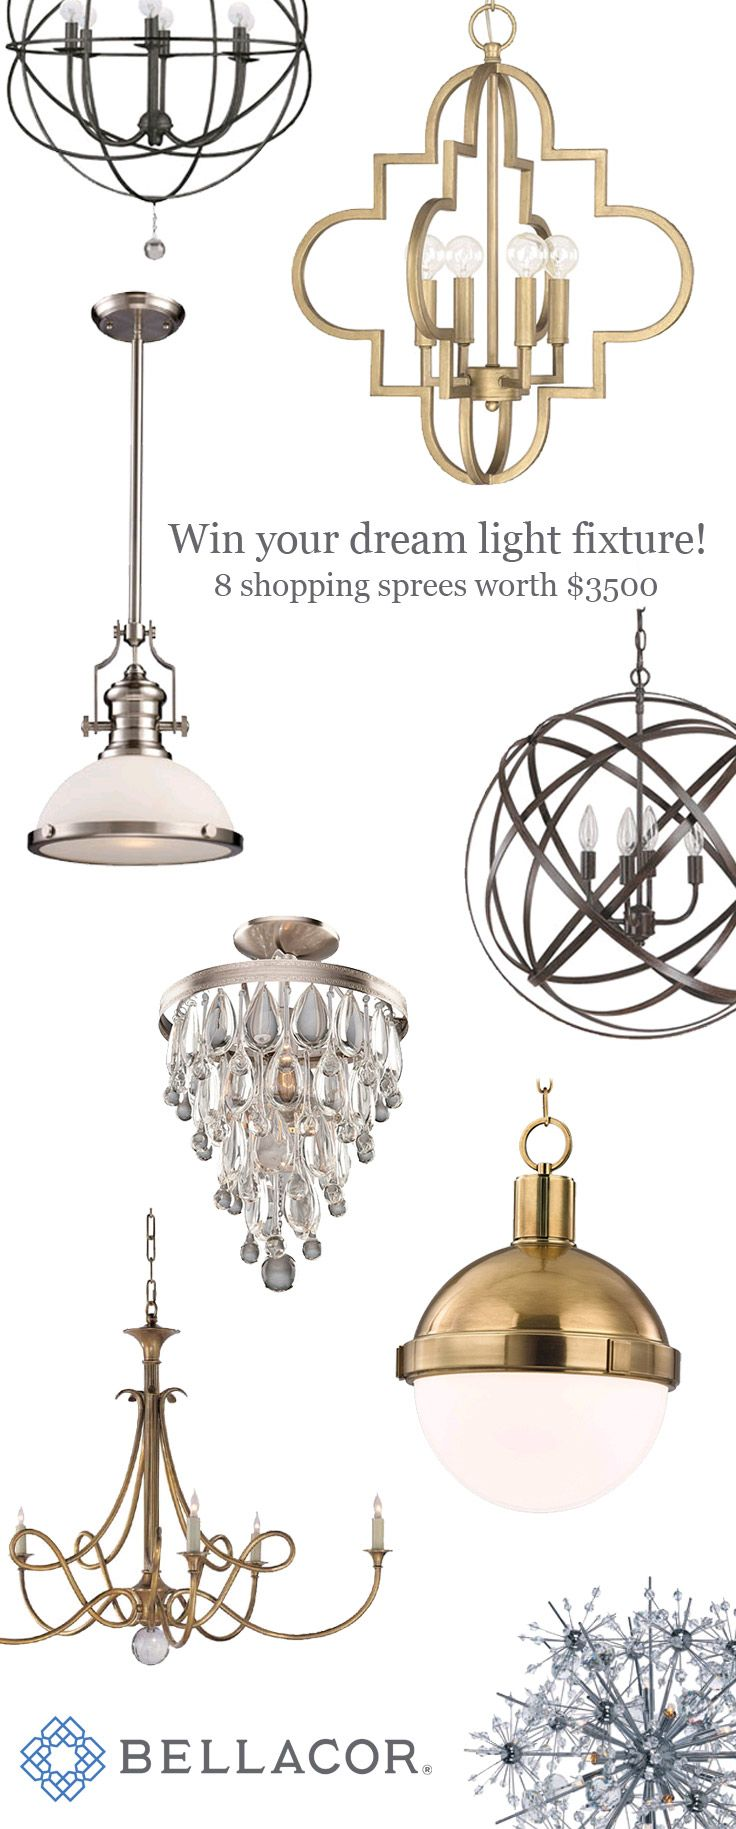 Lighting Tips For Every Room: Win 1 Of 8 Lighting Shopping Sprees And Win Lighting For